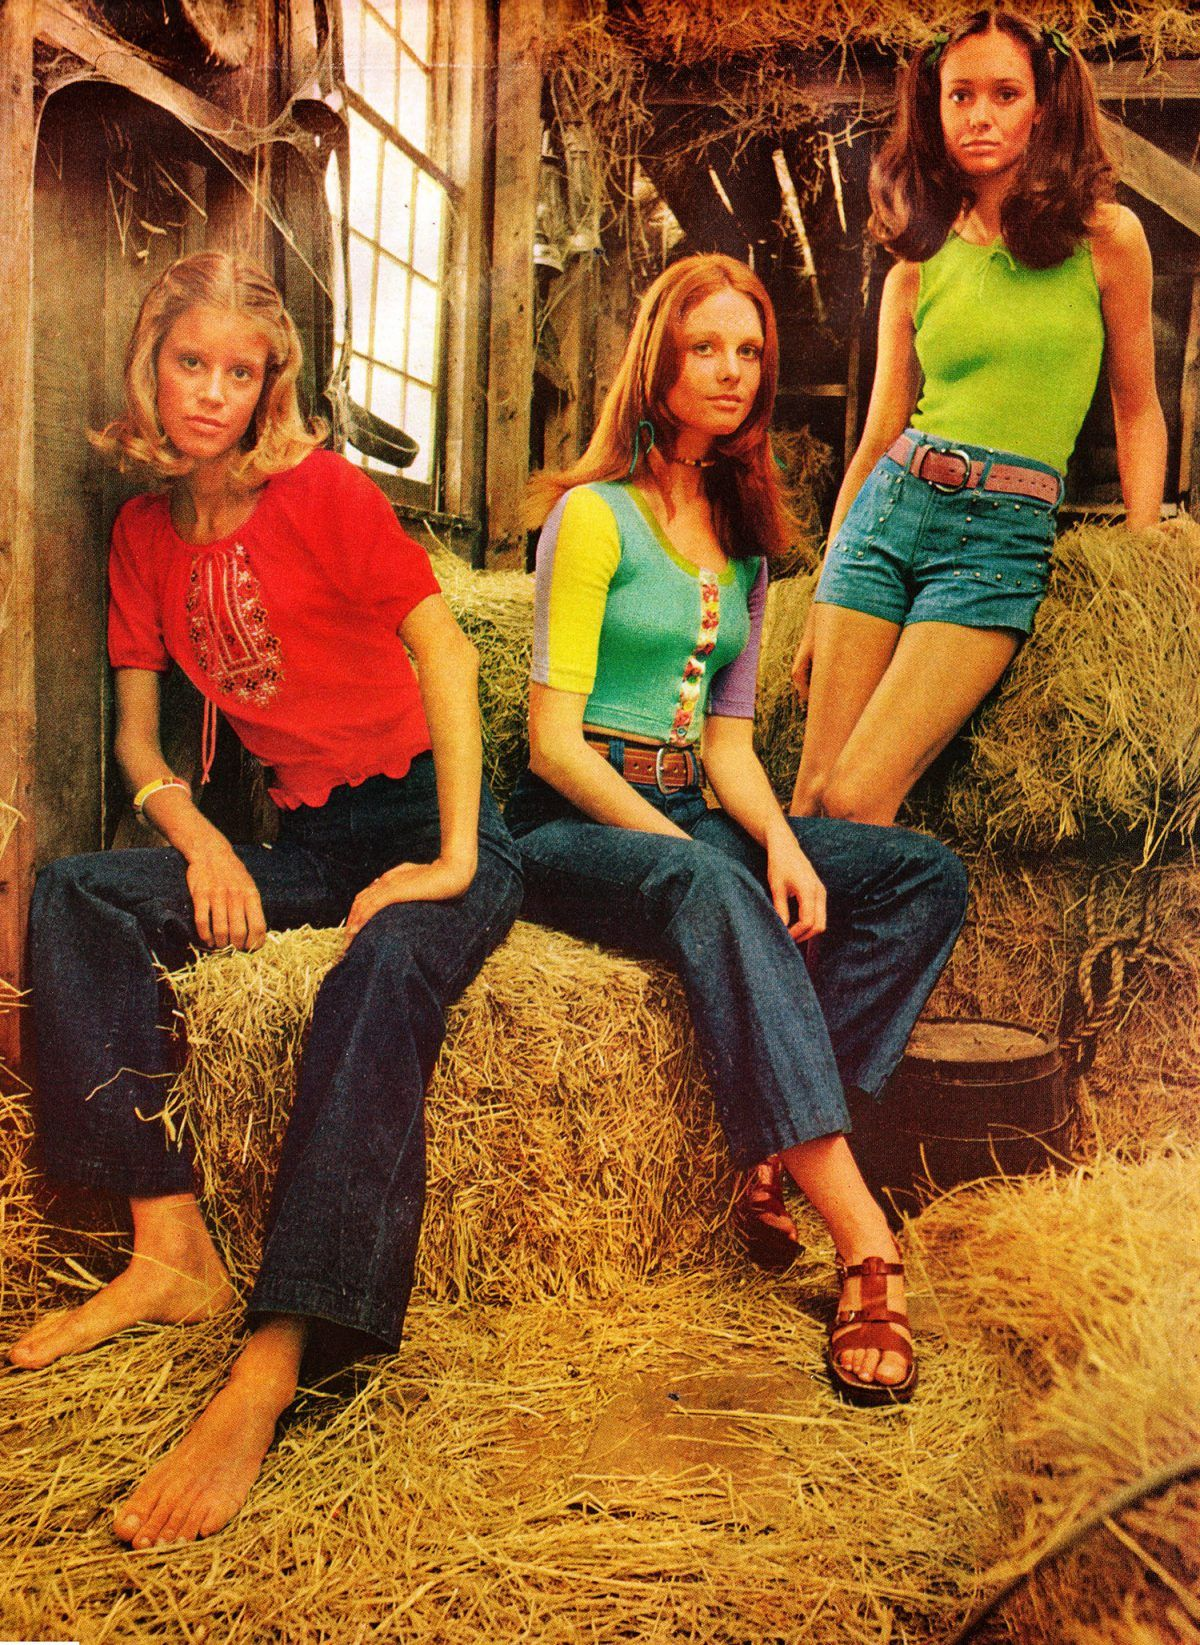 Decade of Denim: Jeans Ads and Fashions from the 1